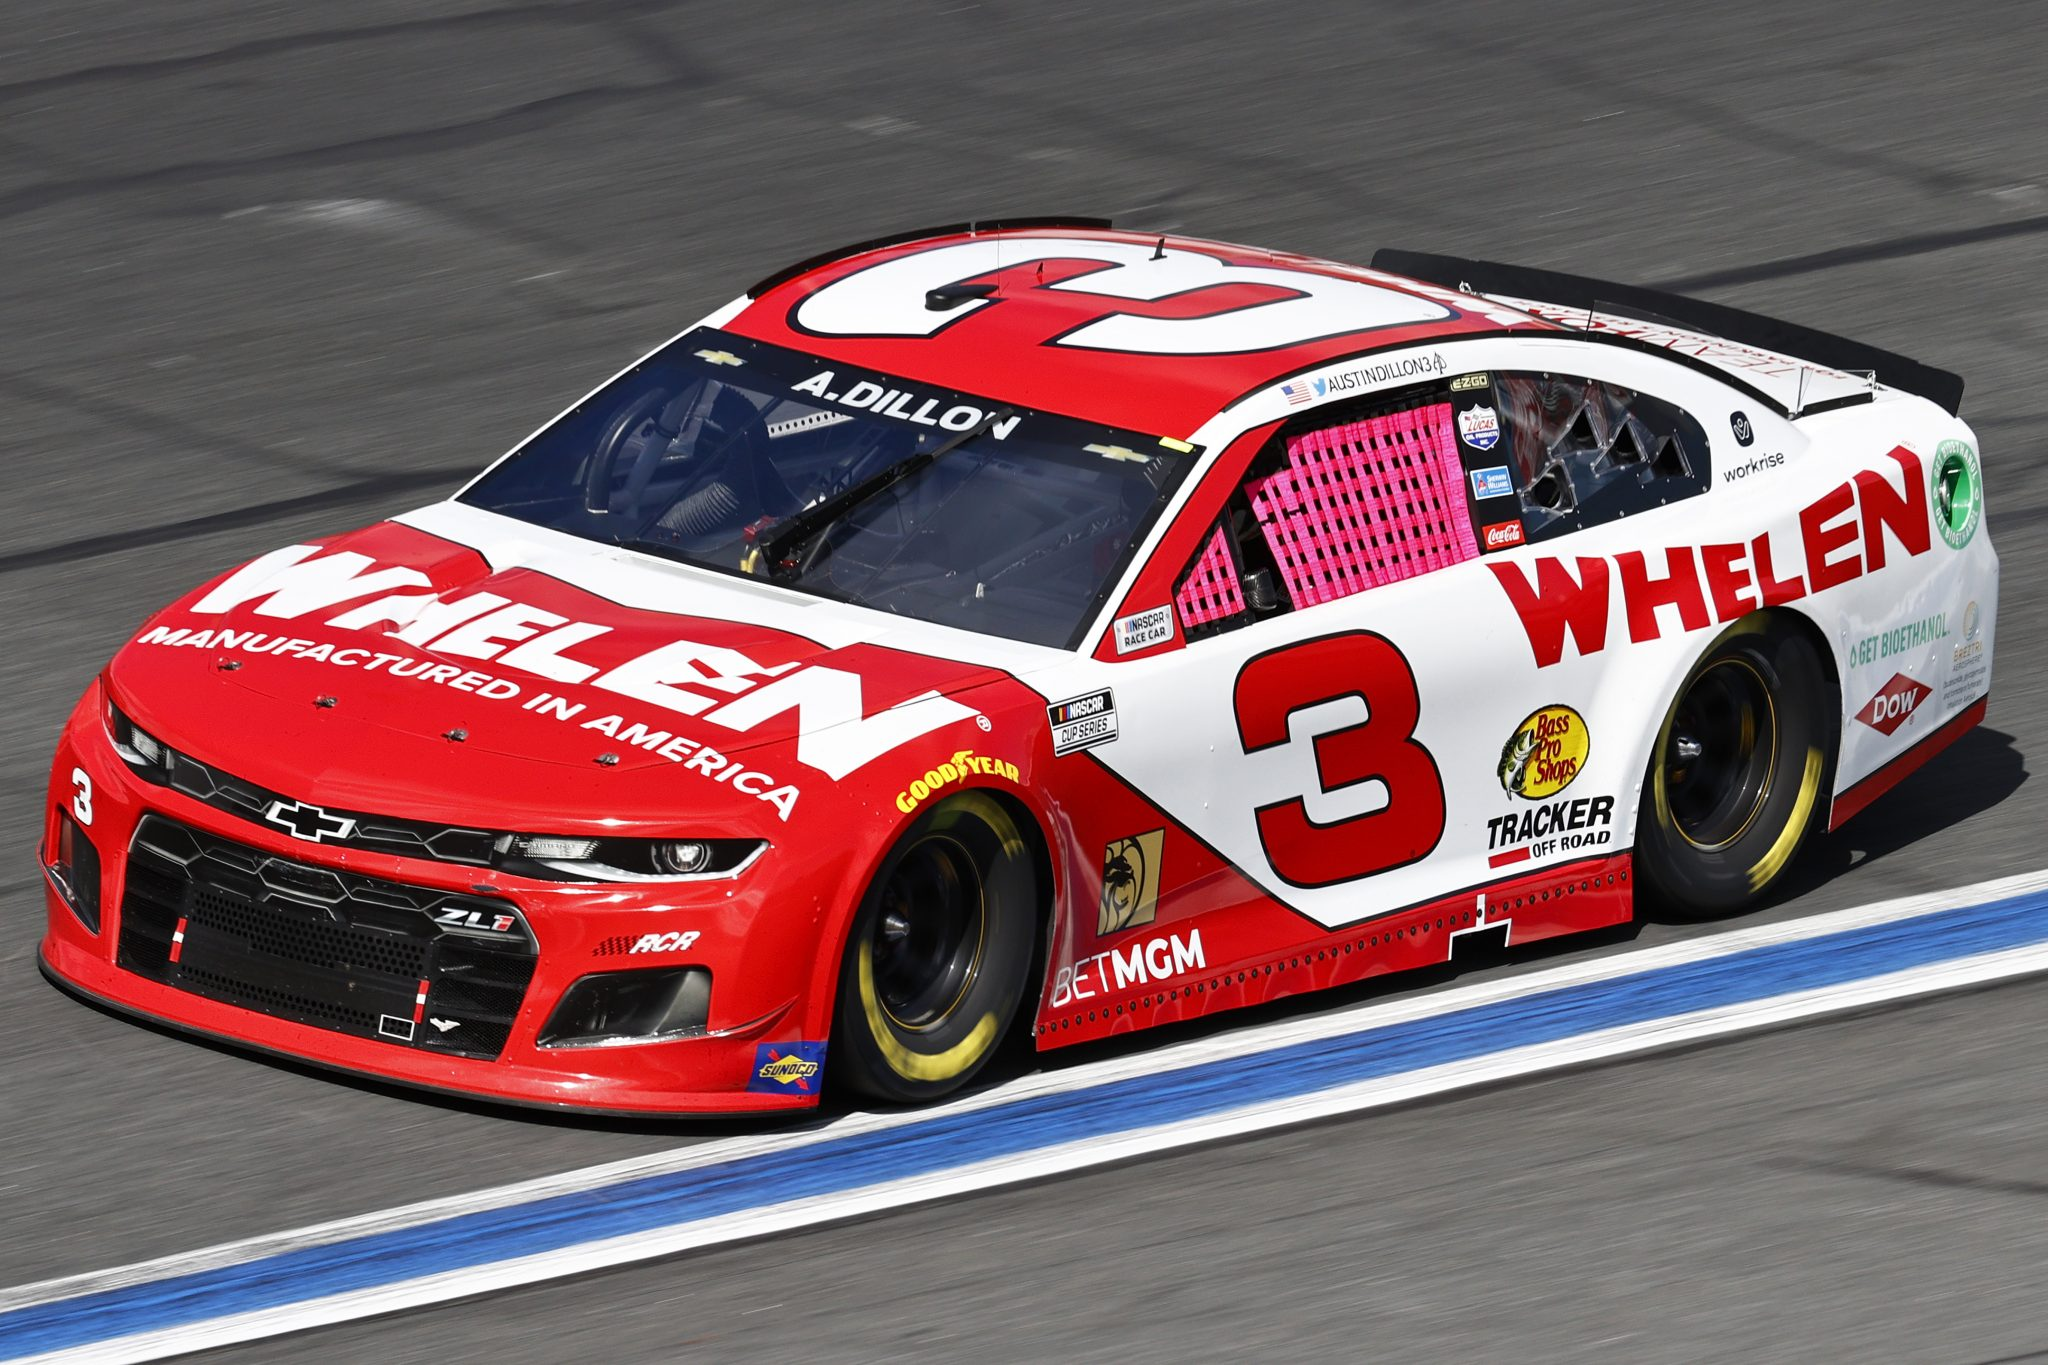 CONCORD, NORTH CAROLINA - OCTOBER 10: Austin Dillon, driver of the #3 Whelen Chevrolet, drives during the NASCAR Cup Series Bank of America ROVAL 400 at Charlotte Motor Speedway on October 10, 2021 in Concord, North Carolina. (Photo by Jared C. Tilton/Getty Images) | Getty Images